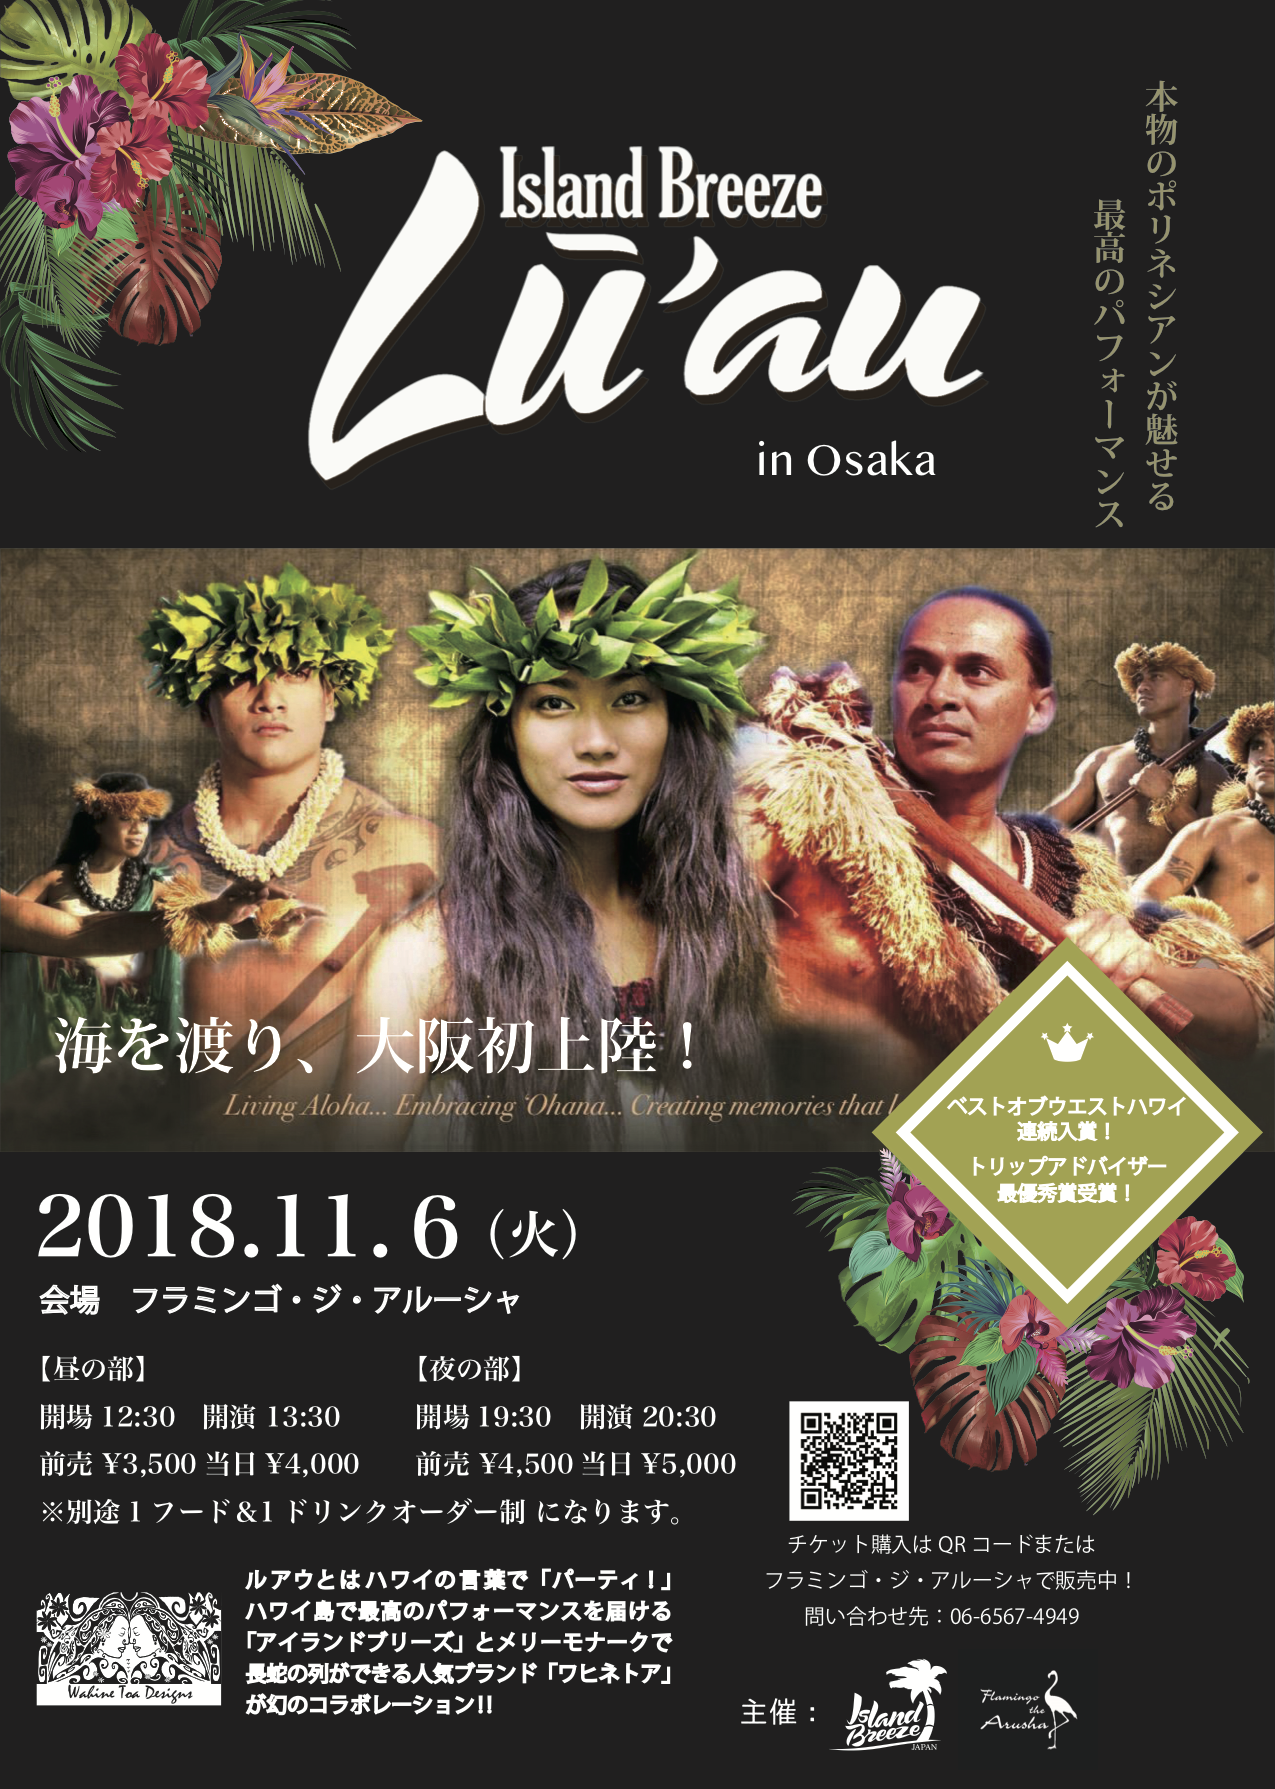 Island Breeze Lu'au Show in Osaka